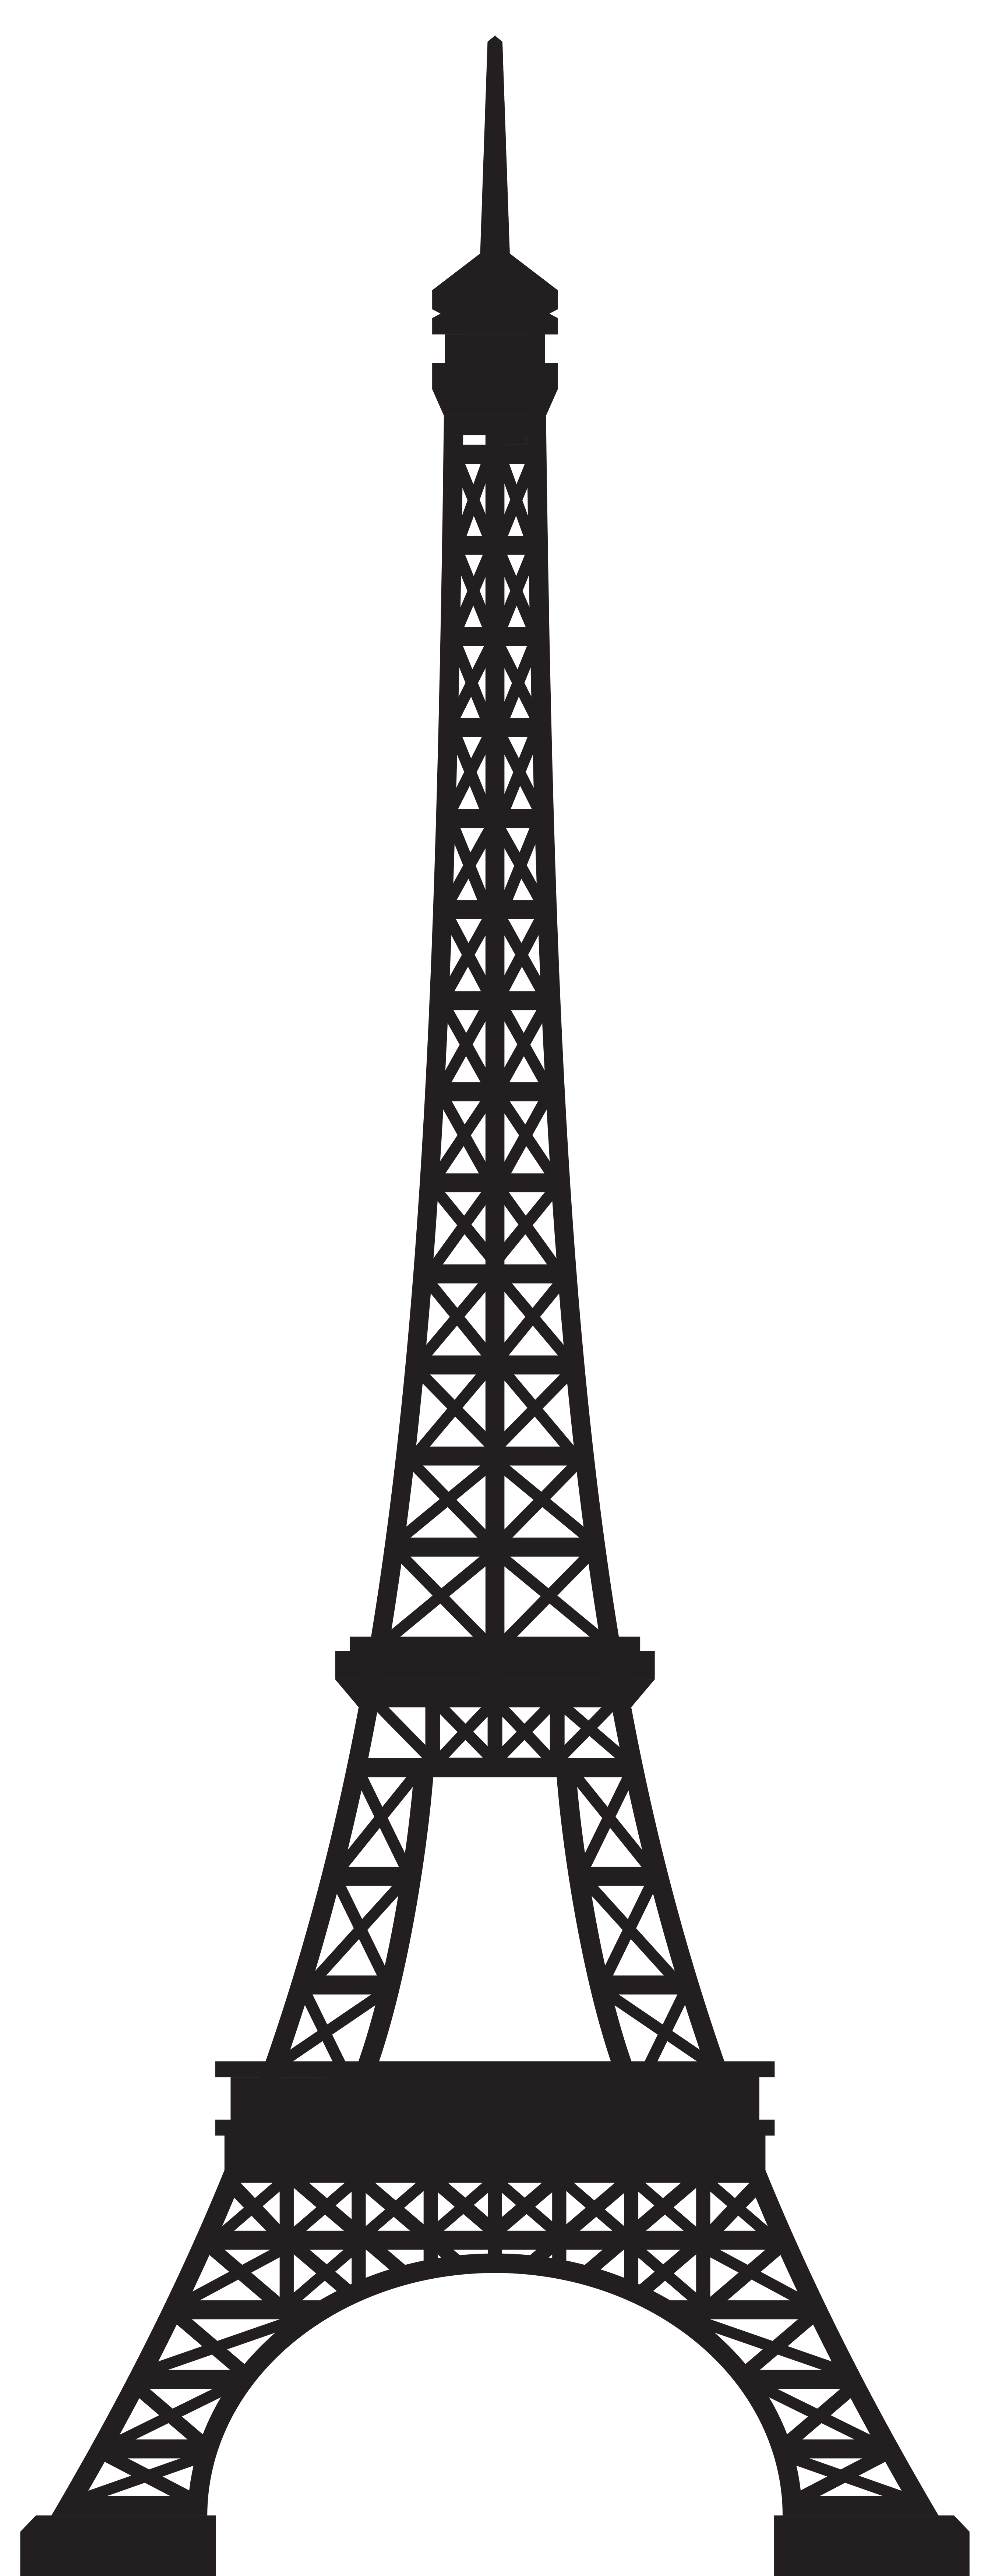 Youtube clipart battlefield. Eiffel tower silhouette png